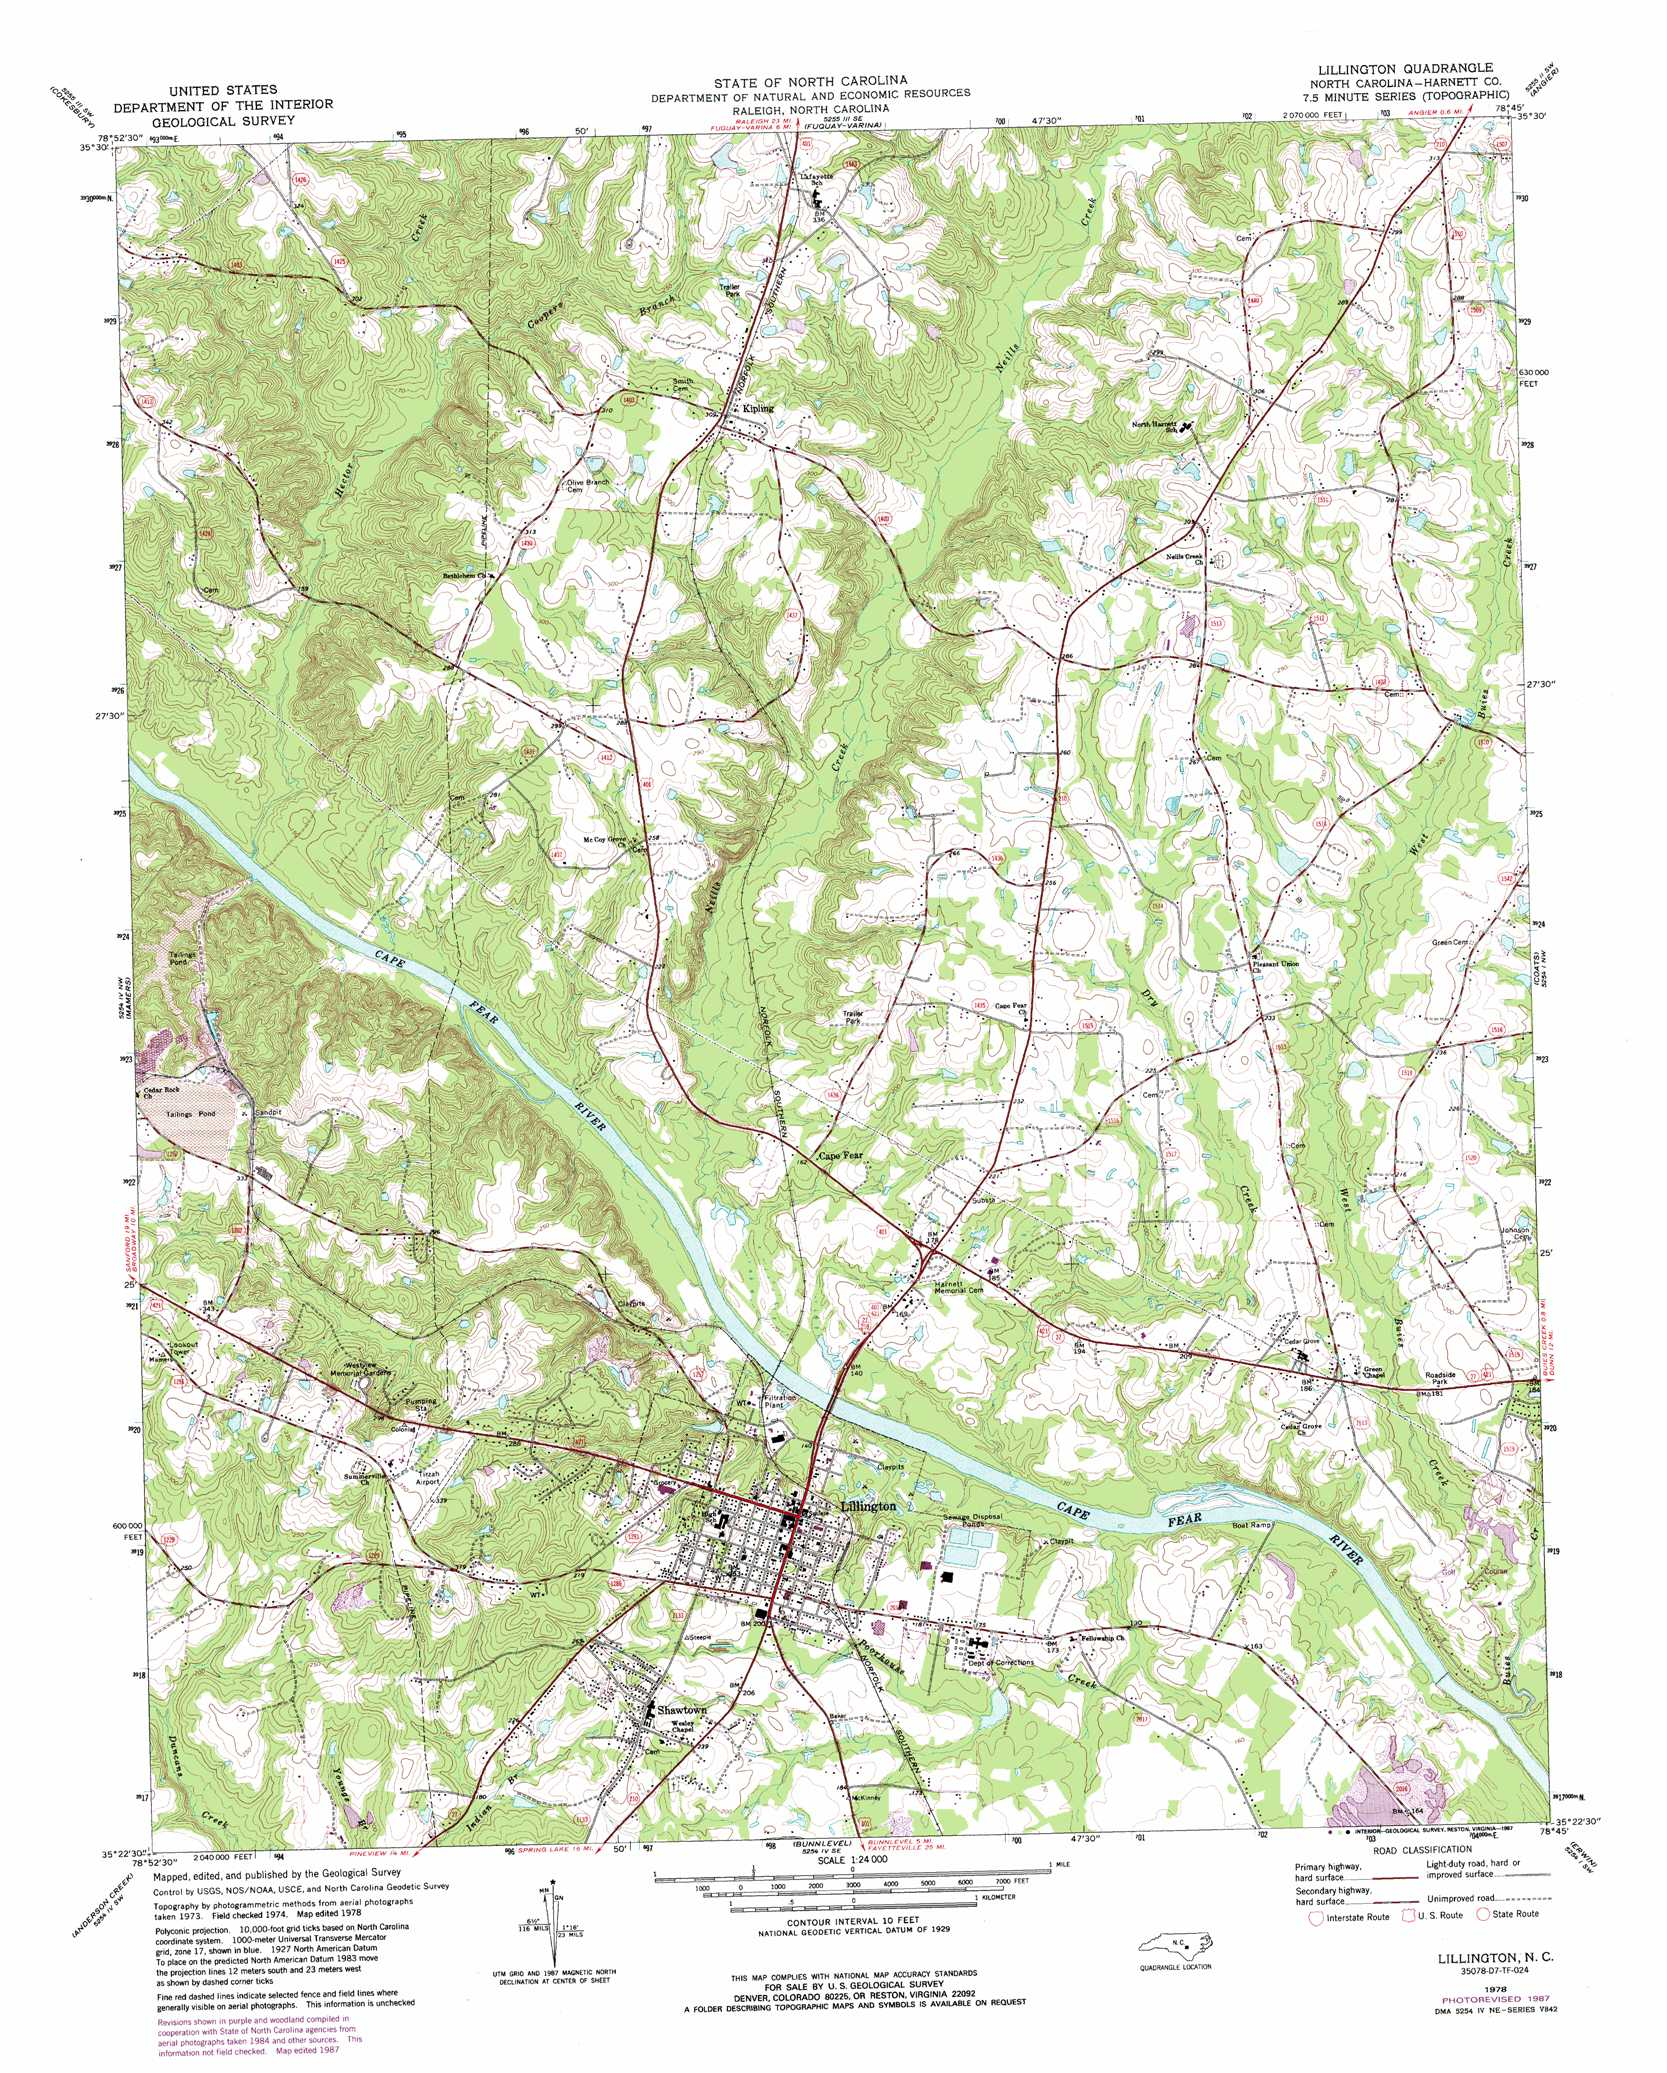 delaware state forest map with 35078d7 on 5587660138 as well 41074e6 in addition Forest Haven Asylum Laurel Md additionally Fedlands together with 35078d7.